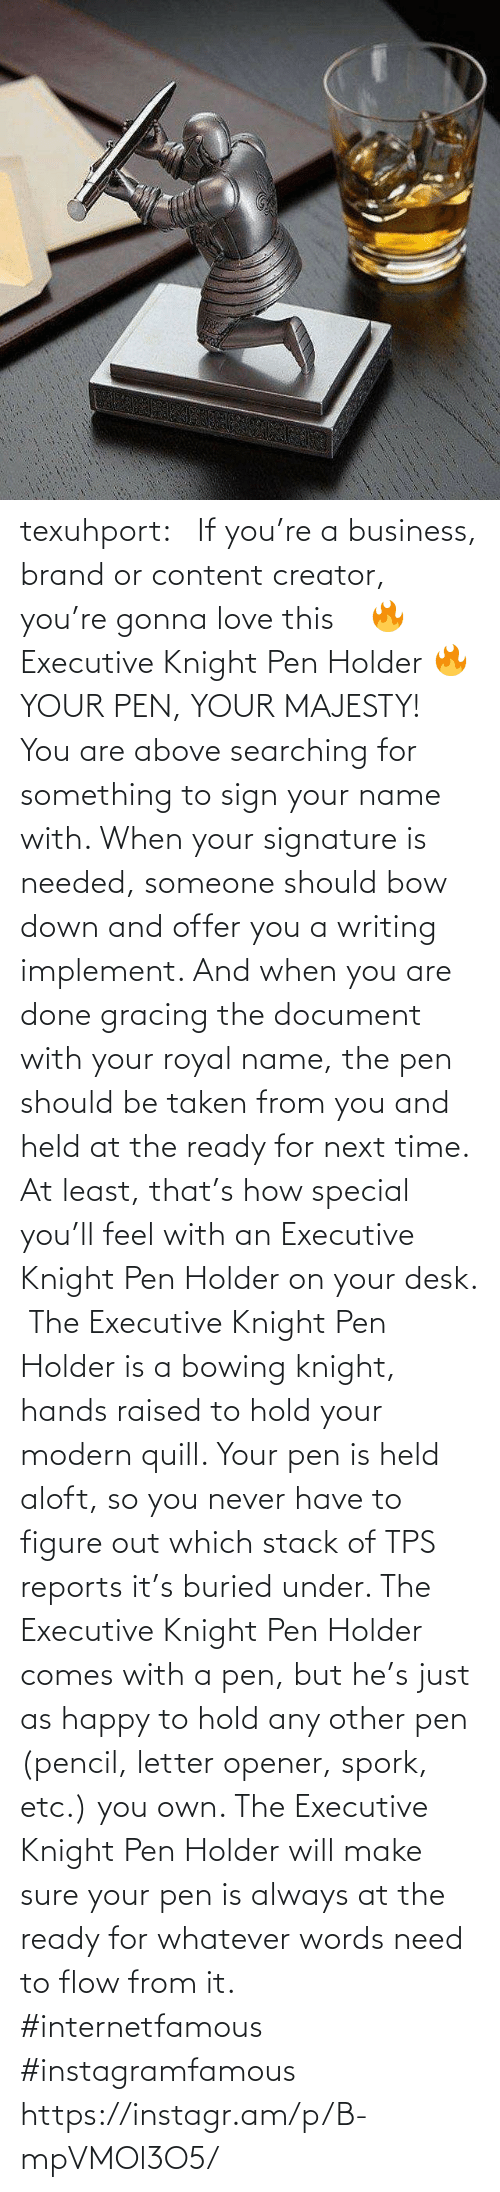 creator: texuhport:⎆ If you're a business, brand or content creator, you're gonna love this ⎆⁣ 🔥 Executive Knight Pen Holder 🔥⁣ YOUR PEN, YOUR MAJESTY!⁣ ⁣ You are above searching for something to sign your name with. When your signature is needed, someone should bow down and offer you a writing implement. And when you are done gracing the document with your royal name, the pen should be taken from you and held at the ready for next time. At least, that's how special you'll feel with an Executive Knight Pen Holder on your desk.⁣ ⁣ The Executive Knight Pen Holder is a bowing knight, hands raised to hold your modern quill. Your pen is held aloft, so you never have to figure out which stack of TPS reports it's buried under. The Executive Knight Pen Holder comes with a pen, but he's just as happy to hold any other pen (pencil, letter opener, spork, etc.) you own. The Executive Knight Pen Holder will make sure your pen is always at the ready for whatever words need to flow from it.⁣ #internetfamous  #instagramfamous https://instagr.am/p/B-mpVMOl3O5/